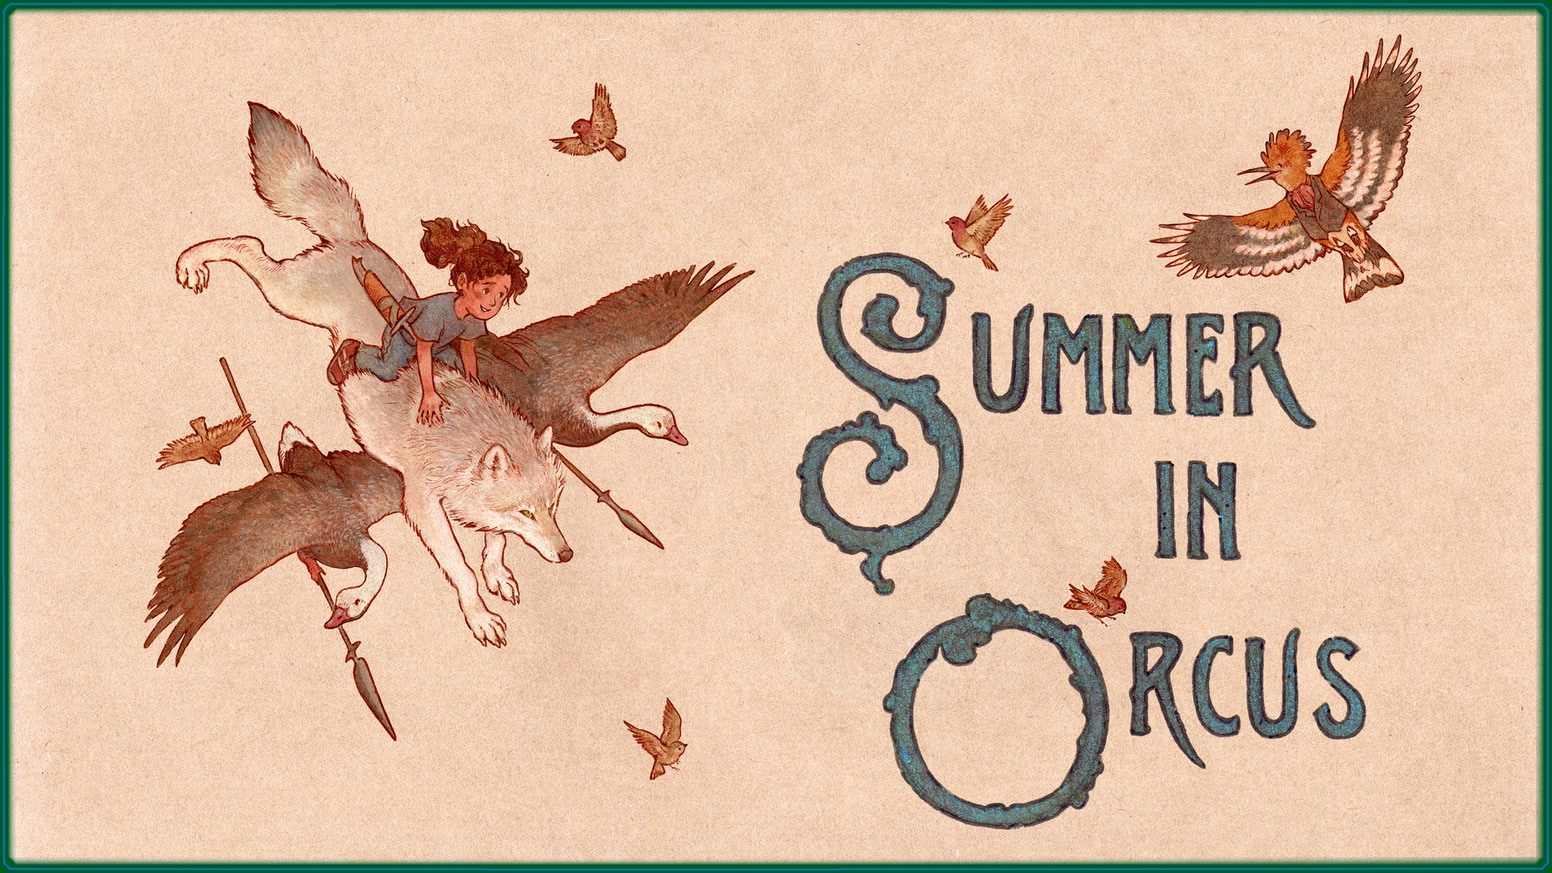 Young adult fantasy novel by T. Kingfisher about an 11 year old girl named Summer sent to the world of Orcus to find her heart's desire